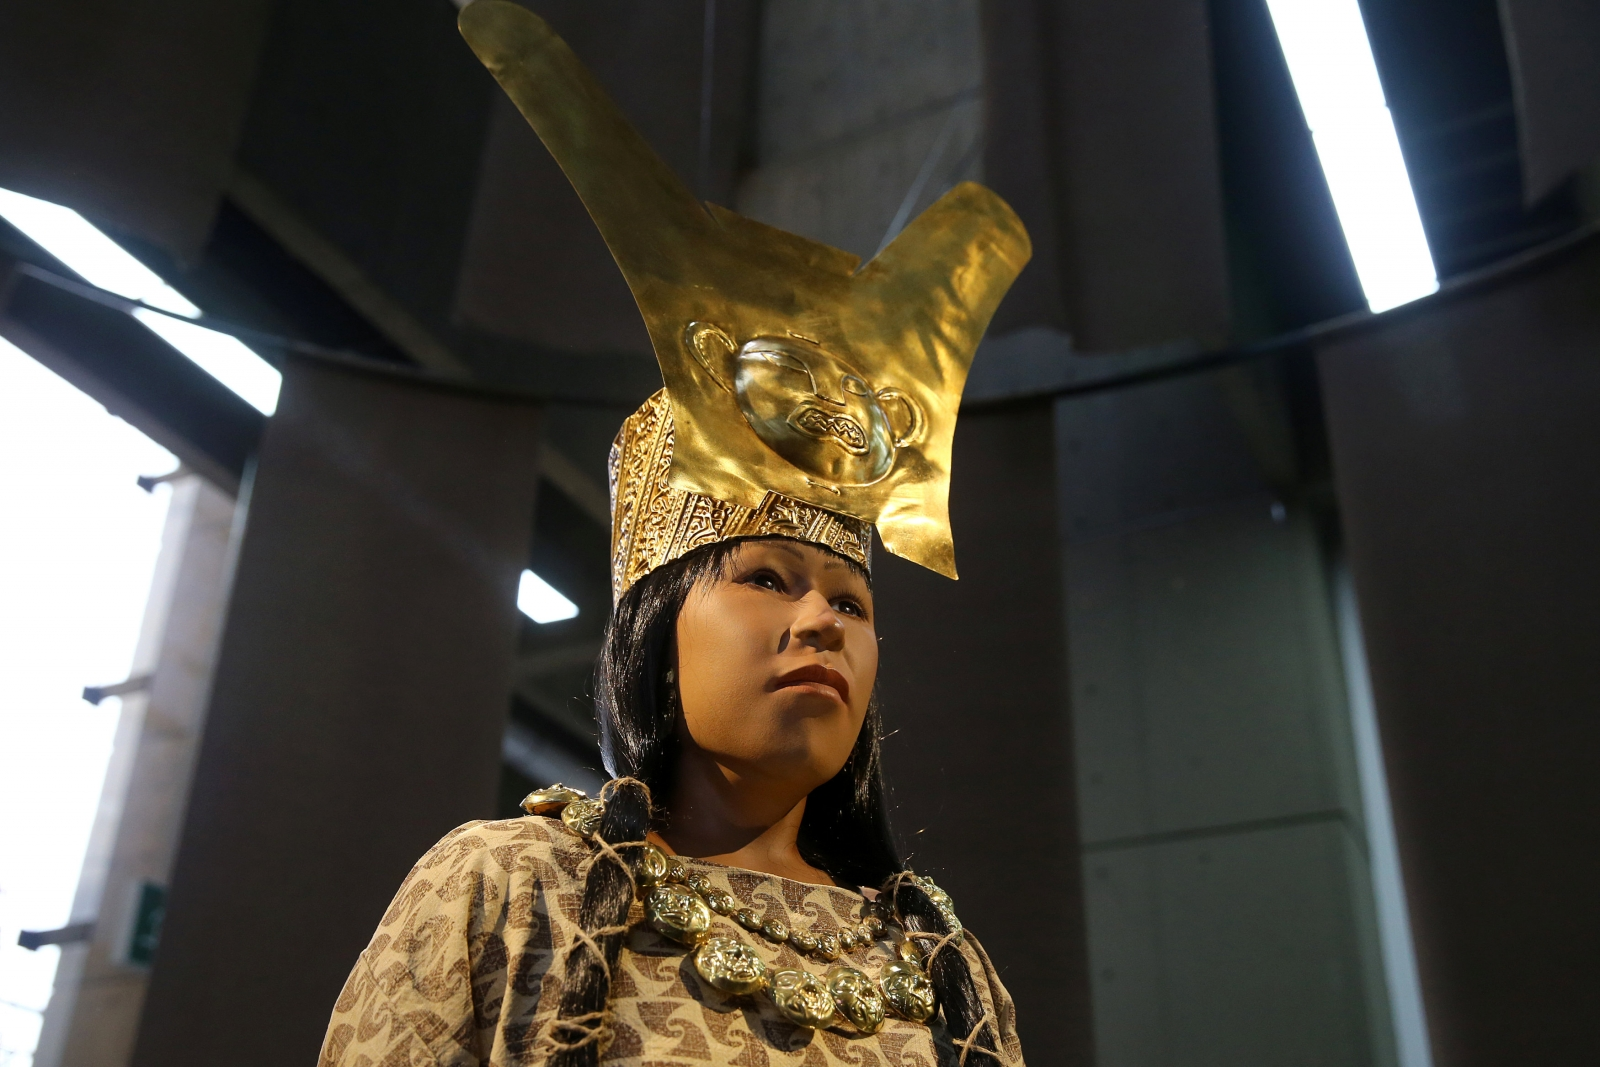 The Lady of Cao